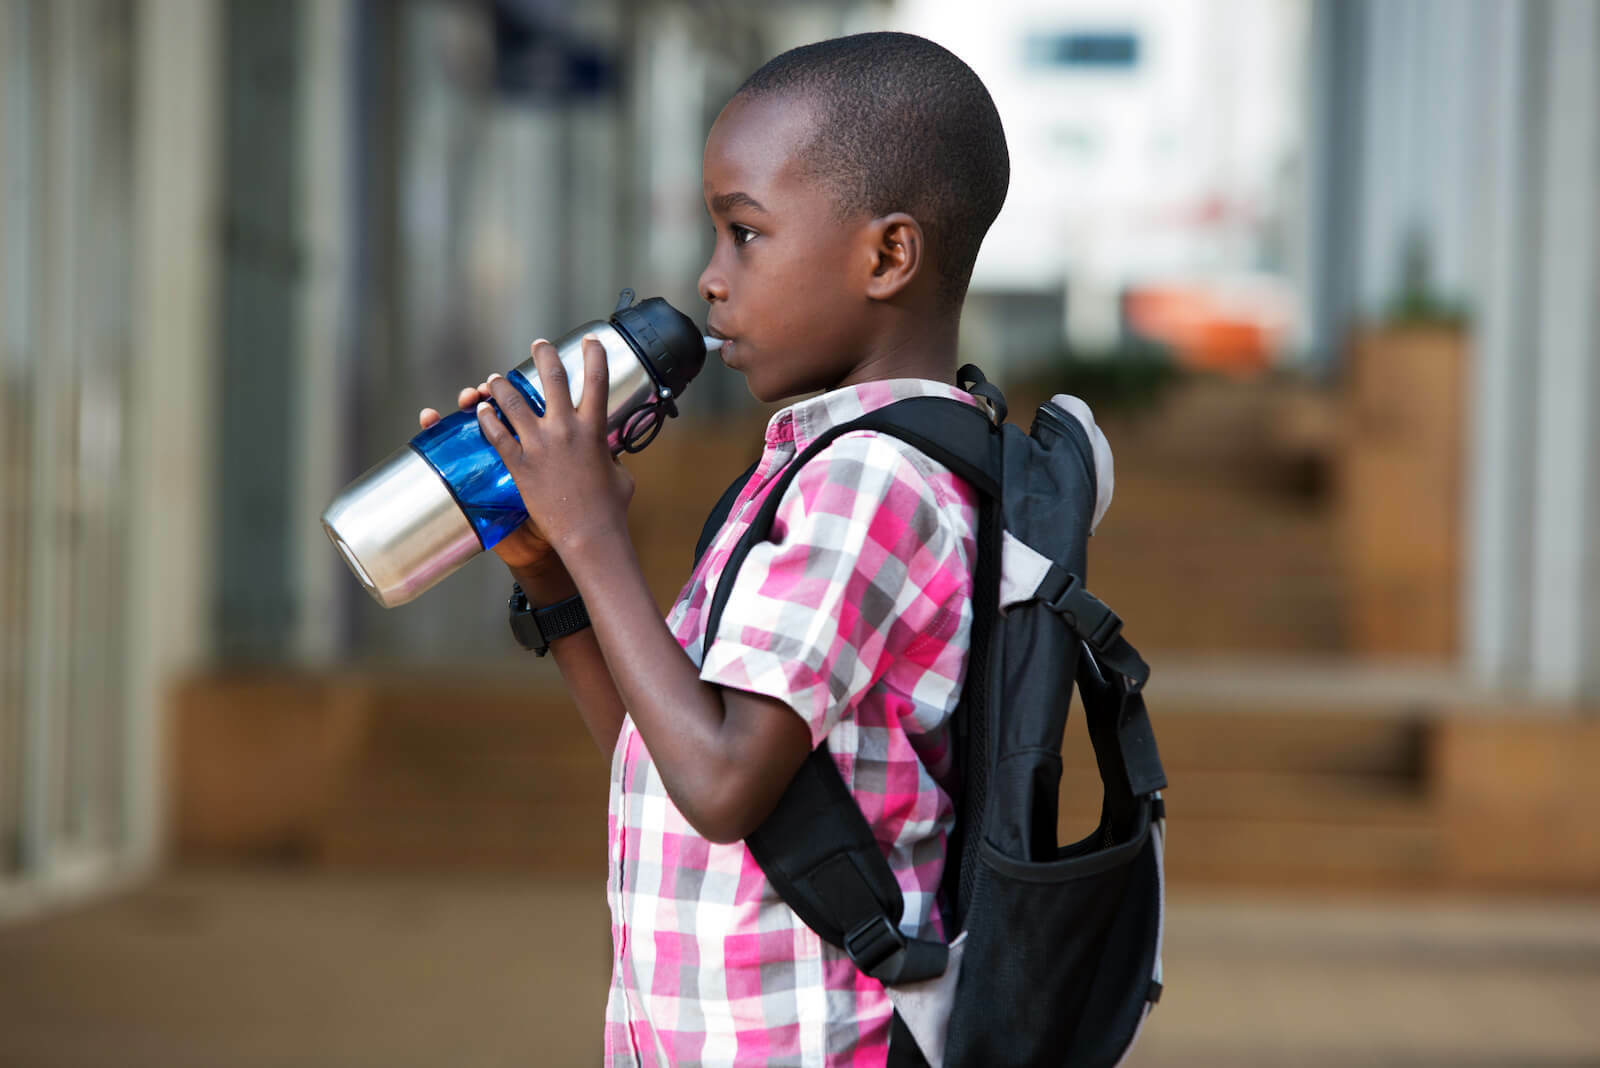 Oral rehydration salts: little boy drinking from a tumbler